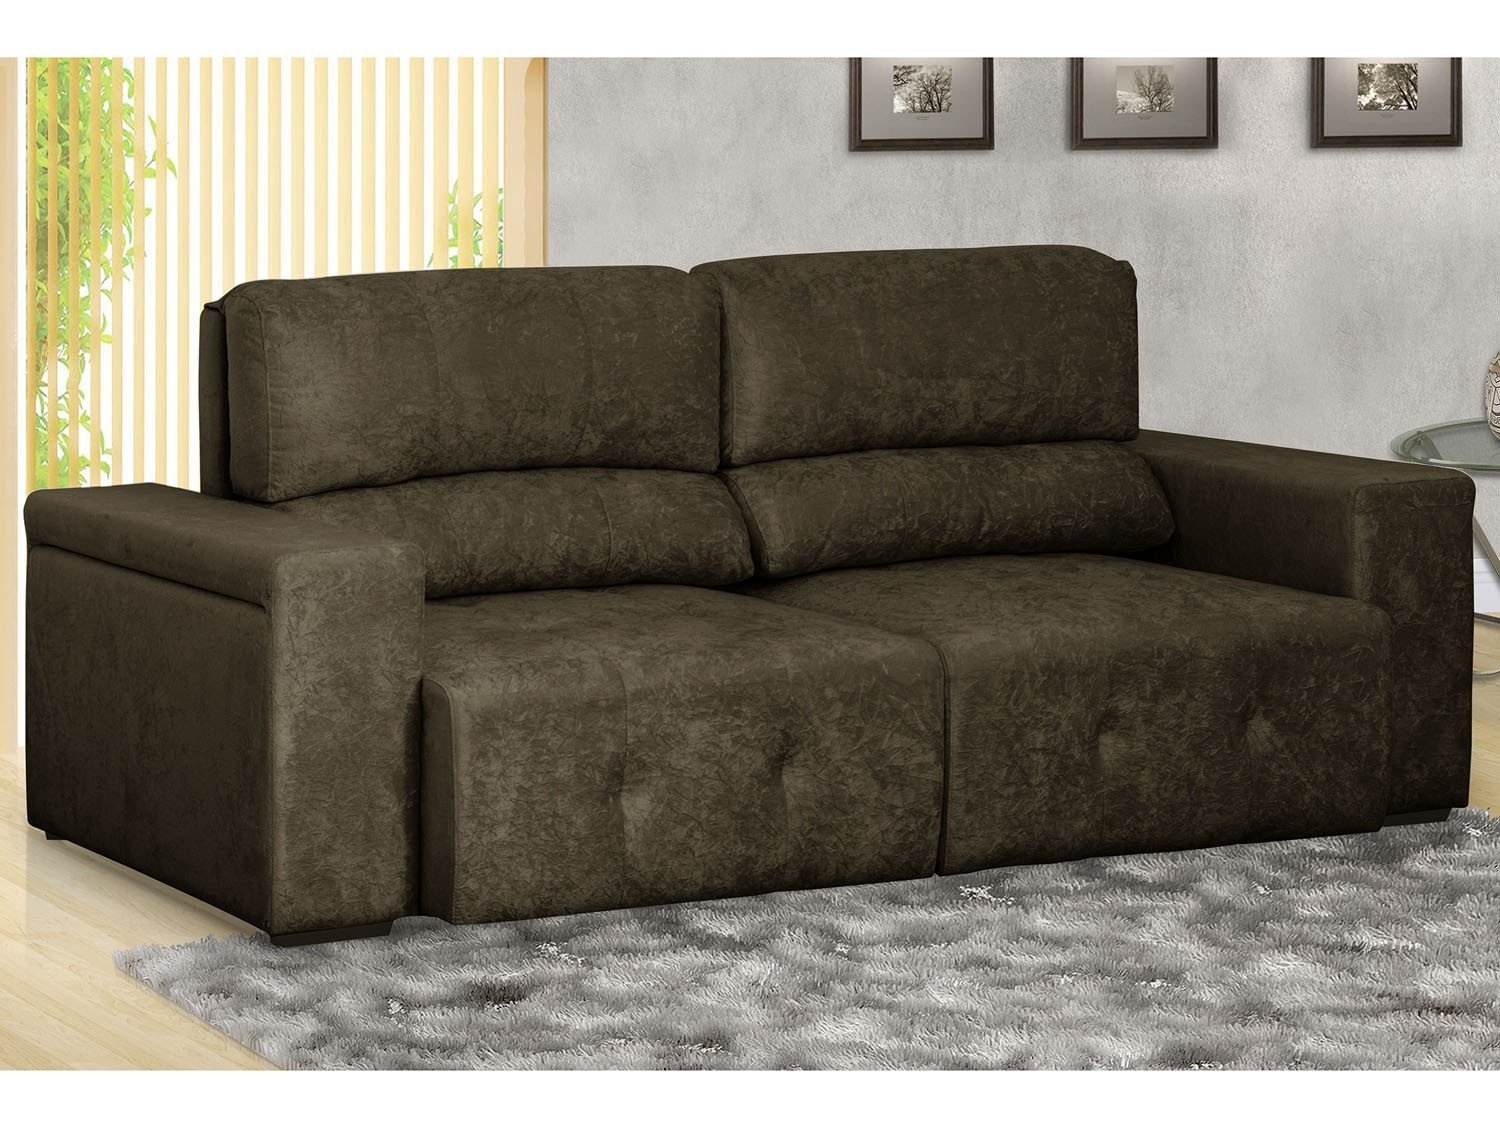 Sof retr til e reclin vel 3 lugares cancun gralha azul for Sofa 03 lugares retratil e reclinavel